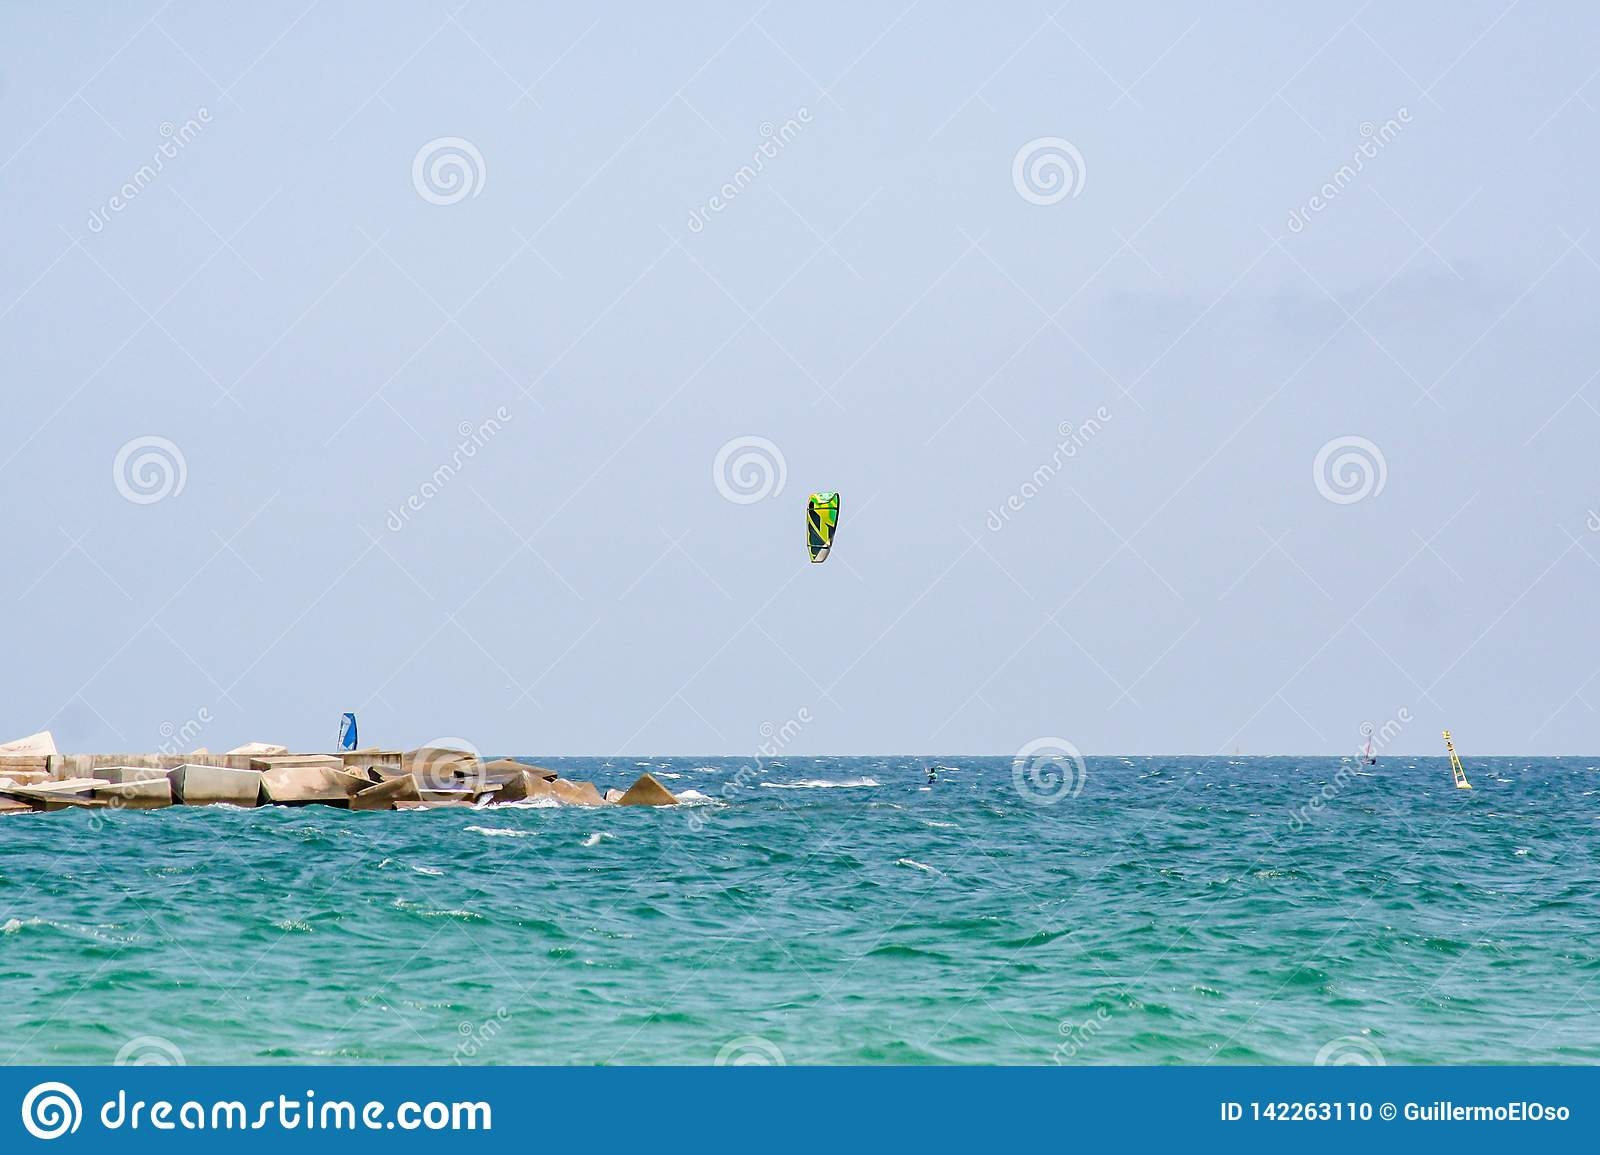 Spectacular view over the sea with kite surfer